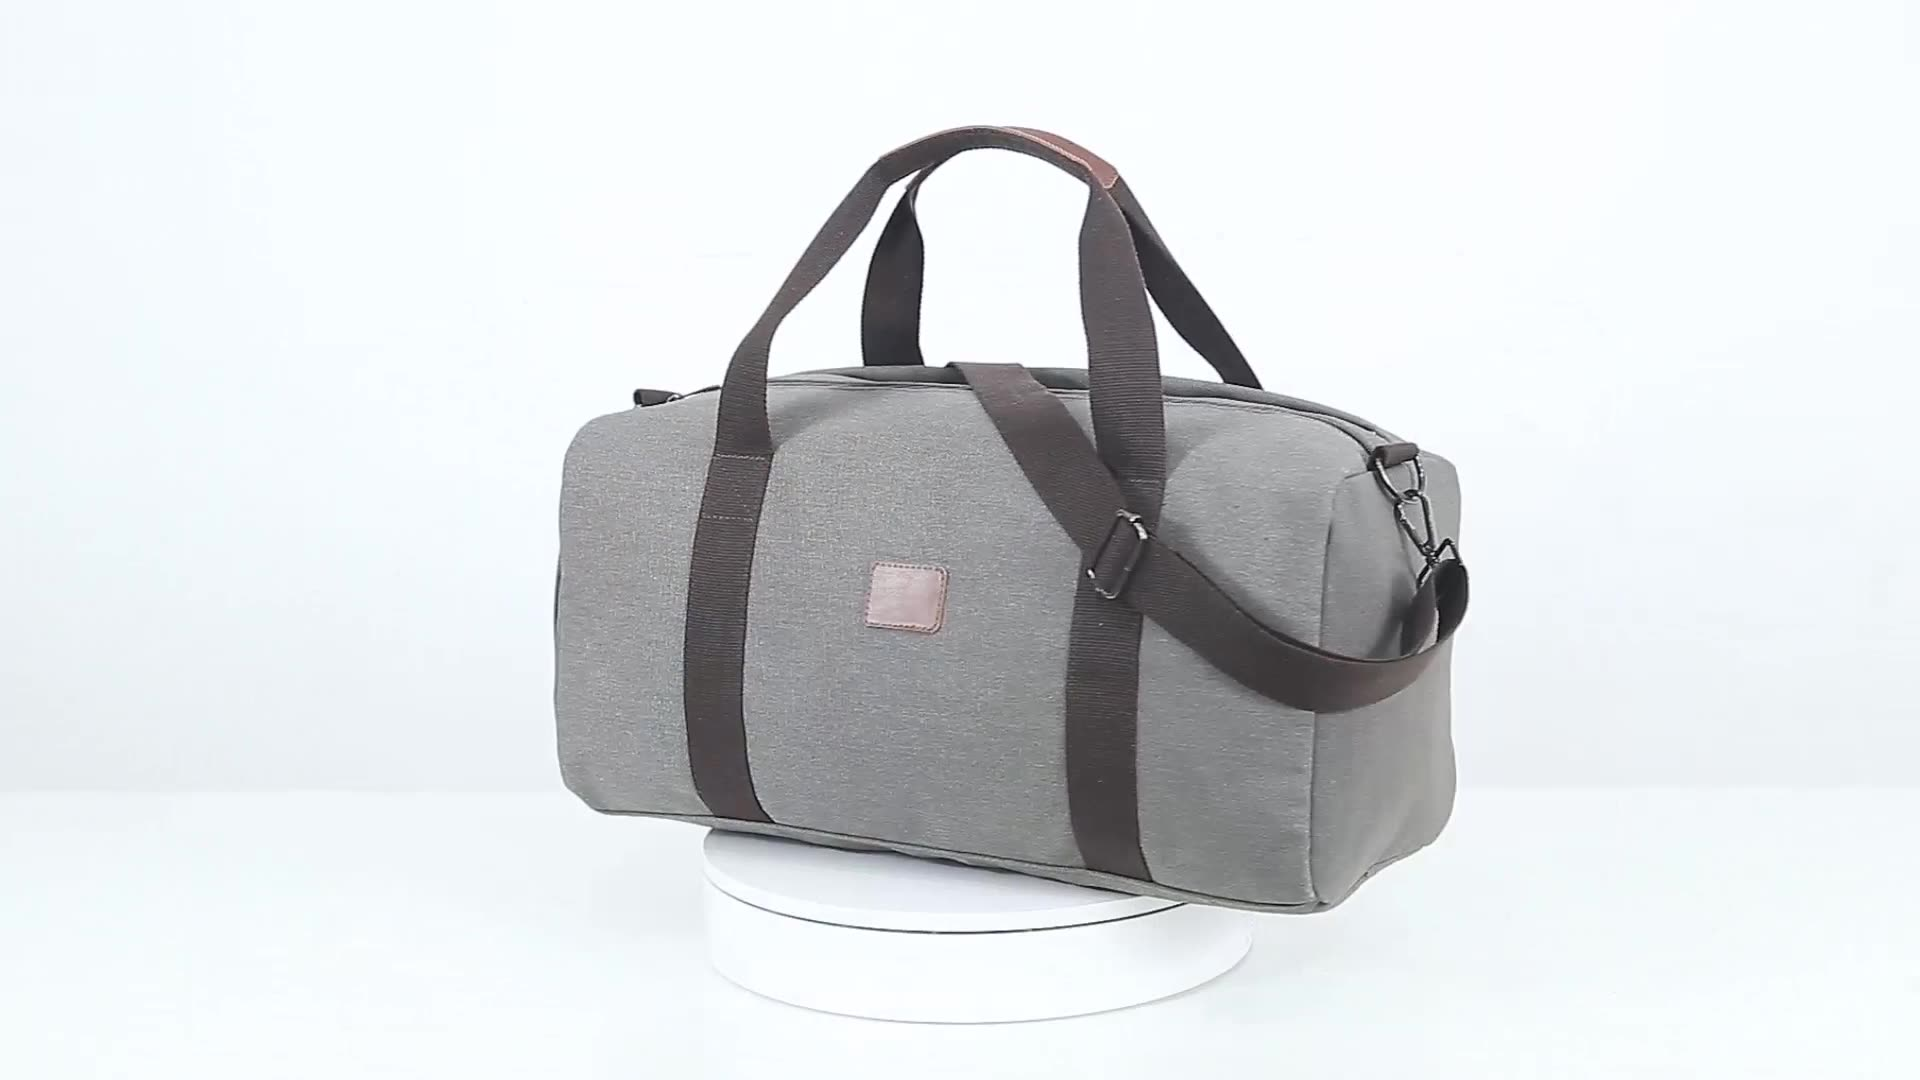 WOHLBEGE canvas travel duffel bags men women yoga sports gym bag with shoe compartment